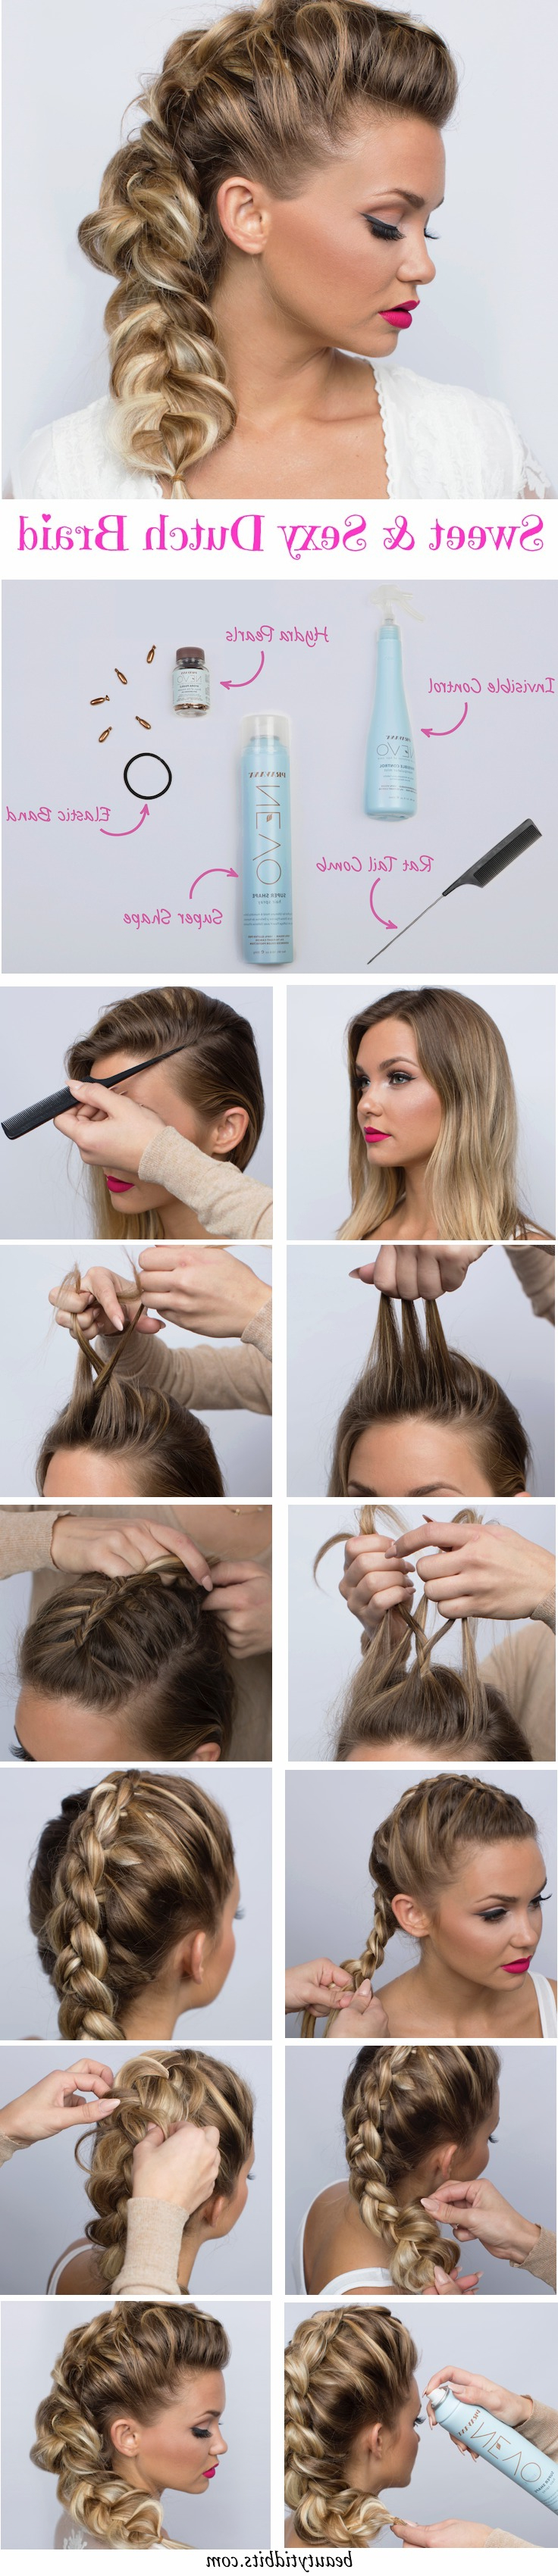 28 Trendy Faux Hawk Hairstyles For Women 2019 – Pretty Designs With Regard To Most Recently Released Messy Braided Faux Hawk Hairstyles (View 6 of 20)